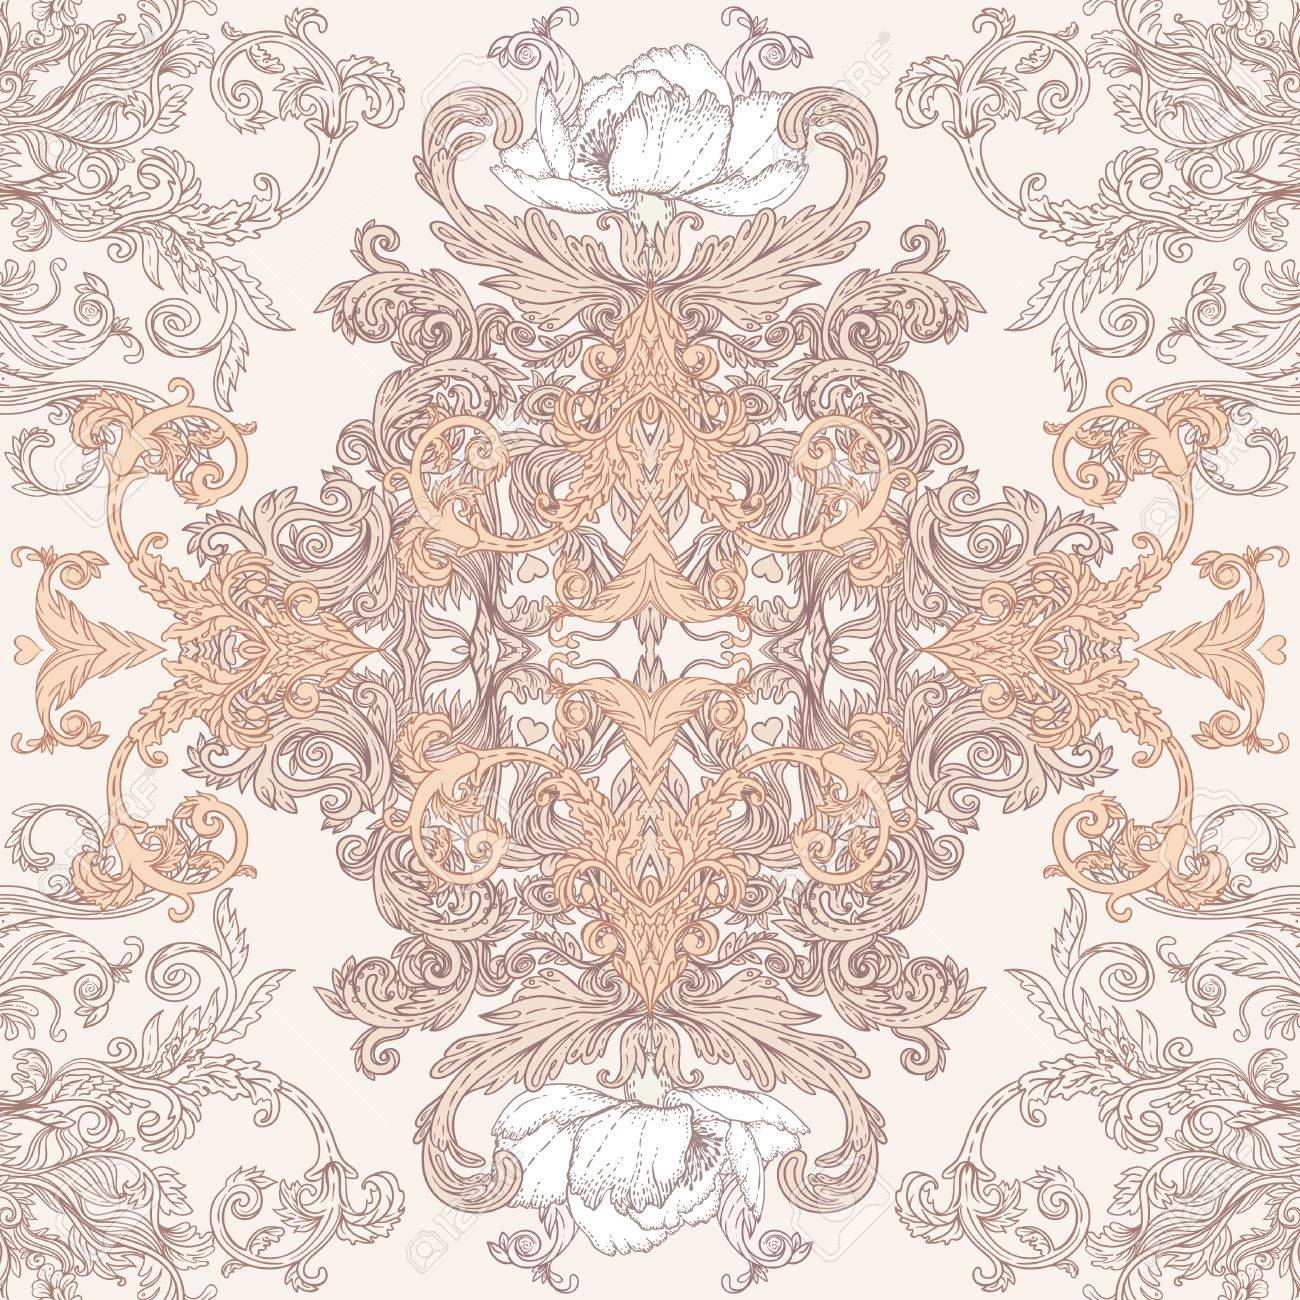 Vintage background ornate baroque pattern vector illustration stock - Vintage Background Ornate Baroque Pattern Vector Illustration Stock Vector 33591869